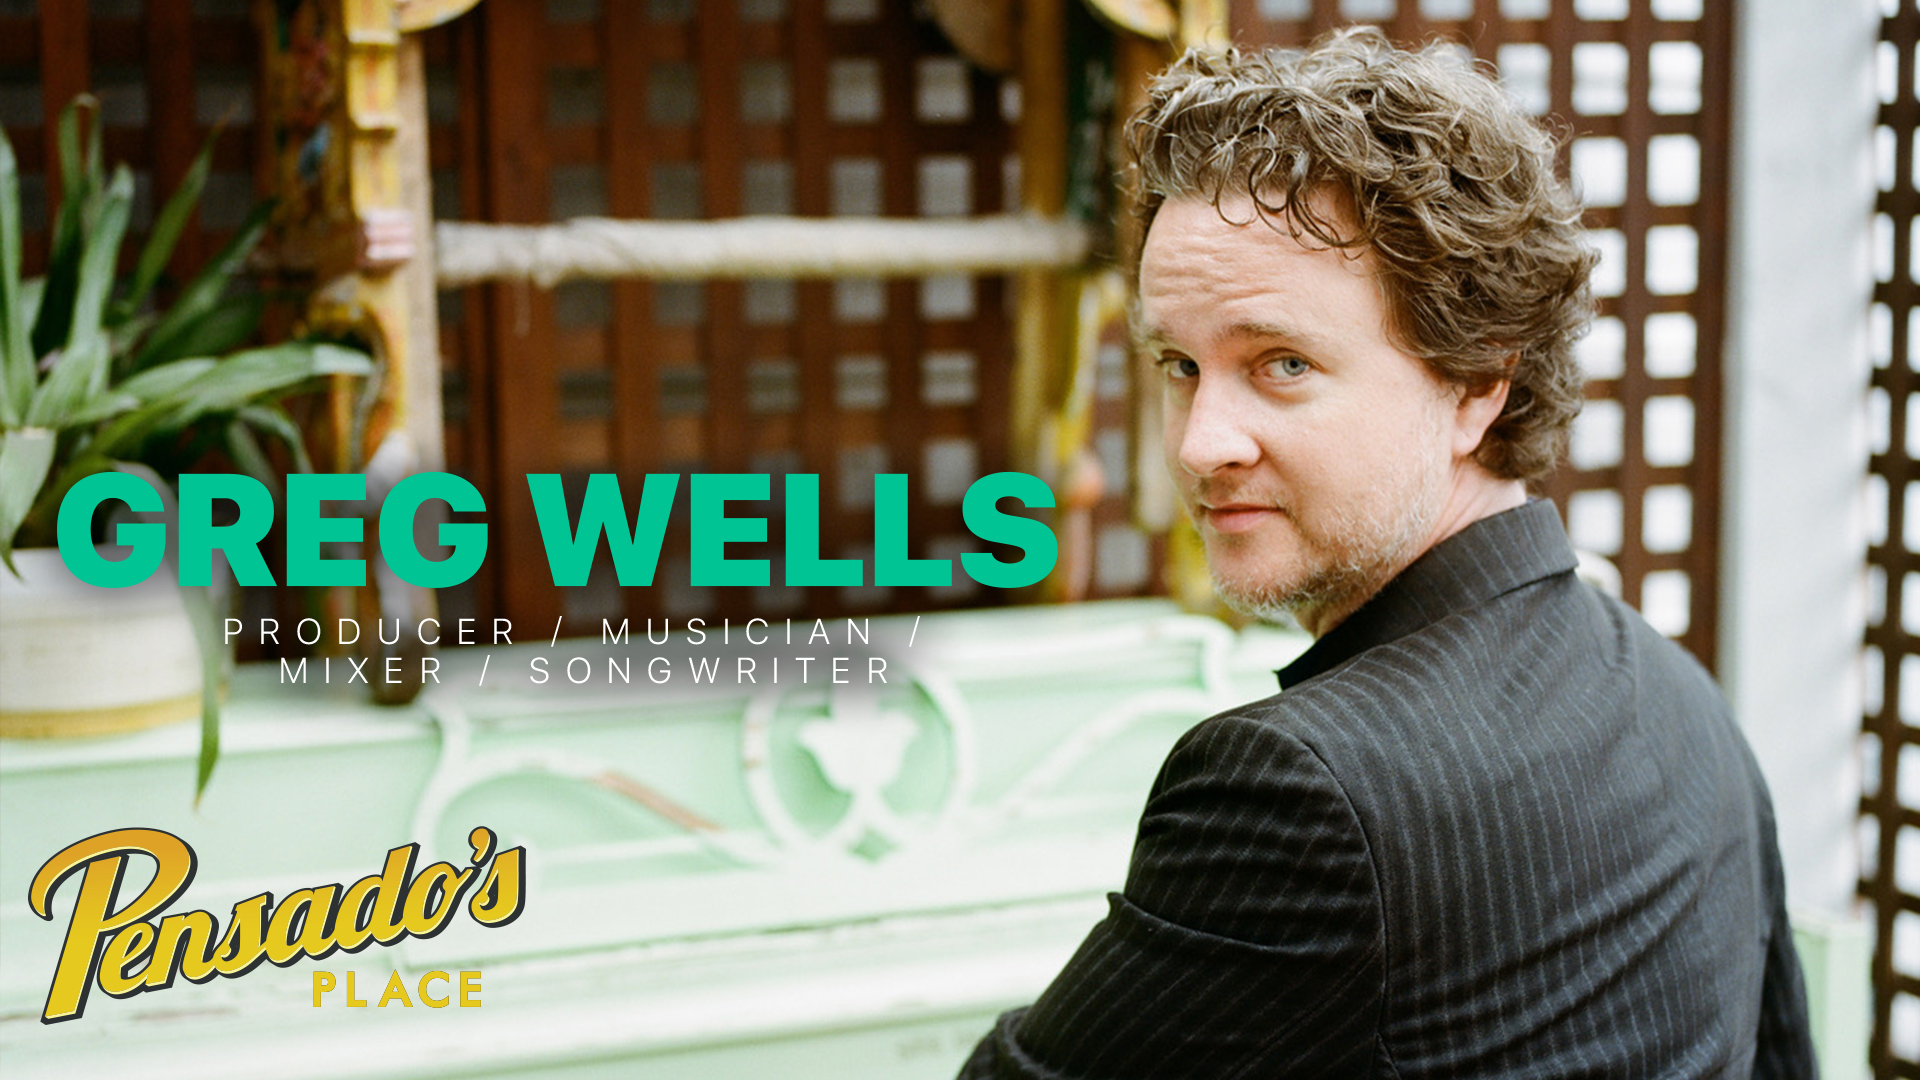 Producer / Musician / Mixer / Songwriter, Greg Wells